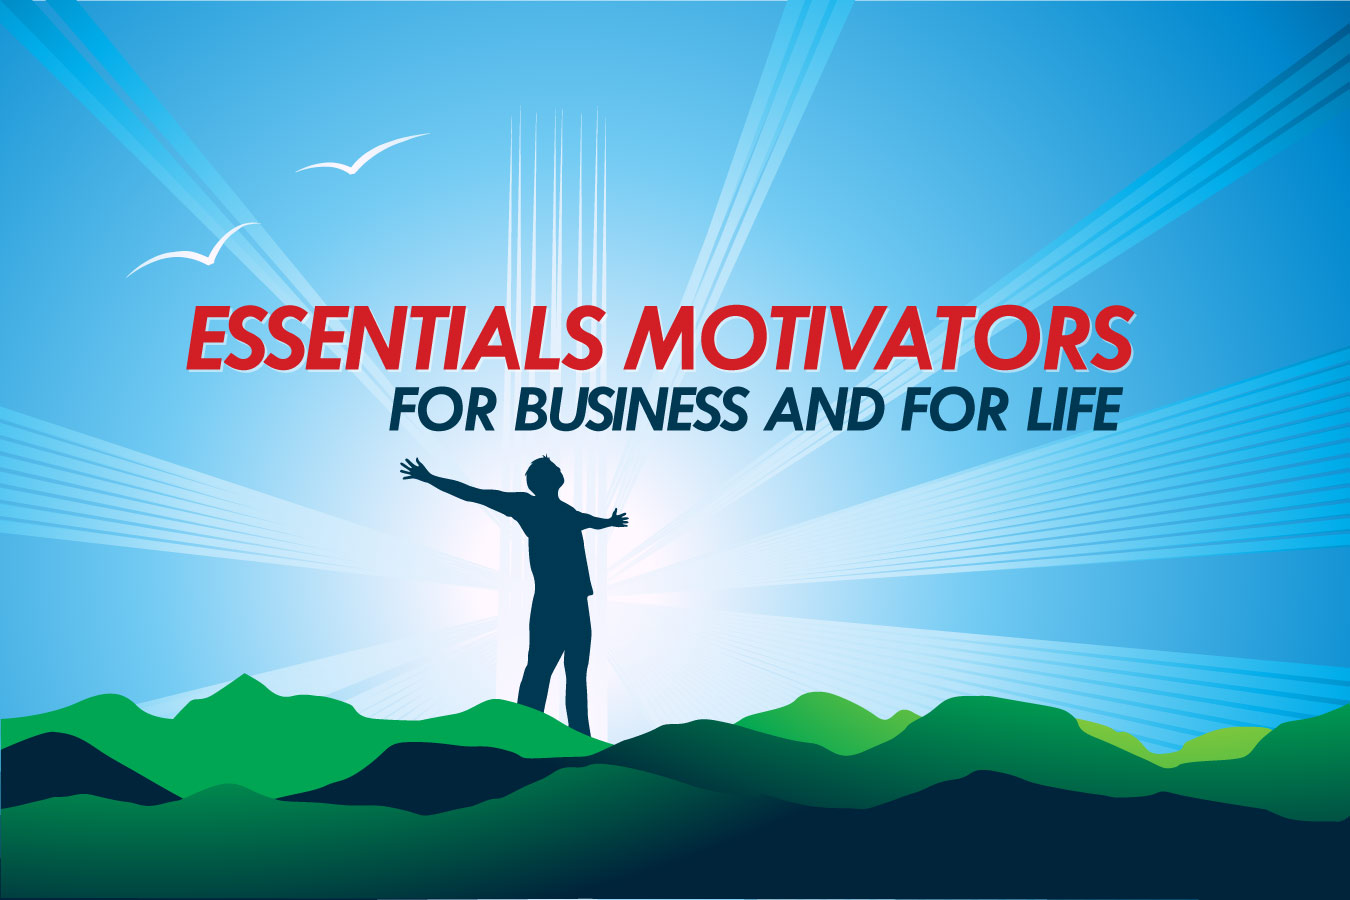 Essentials motivators for business and for life